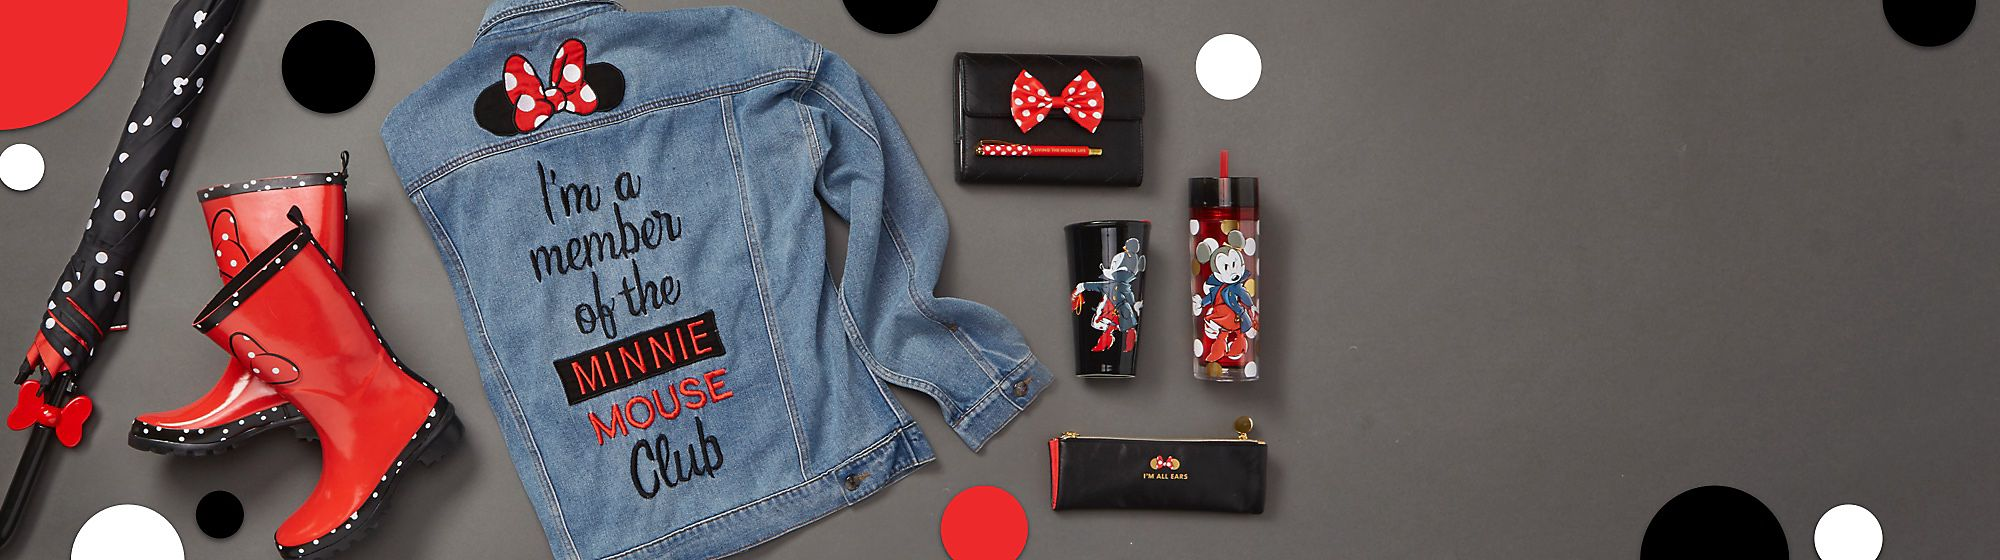 Minnie Rocks the Dots Inspired by Minnie's iconic love of polka dots, we celebrate National Polka Dot Day by launching this fashion-forward range